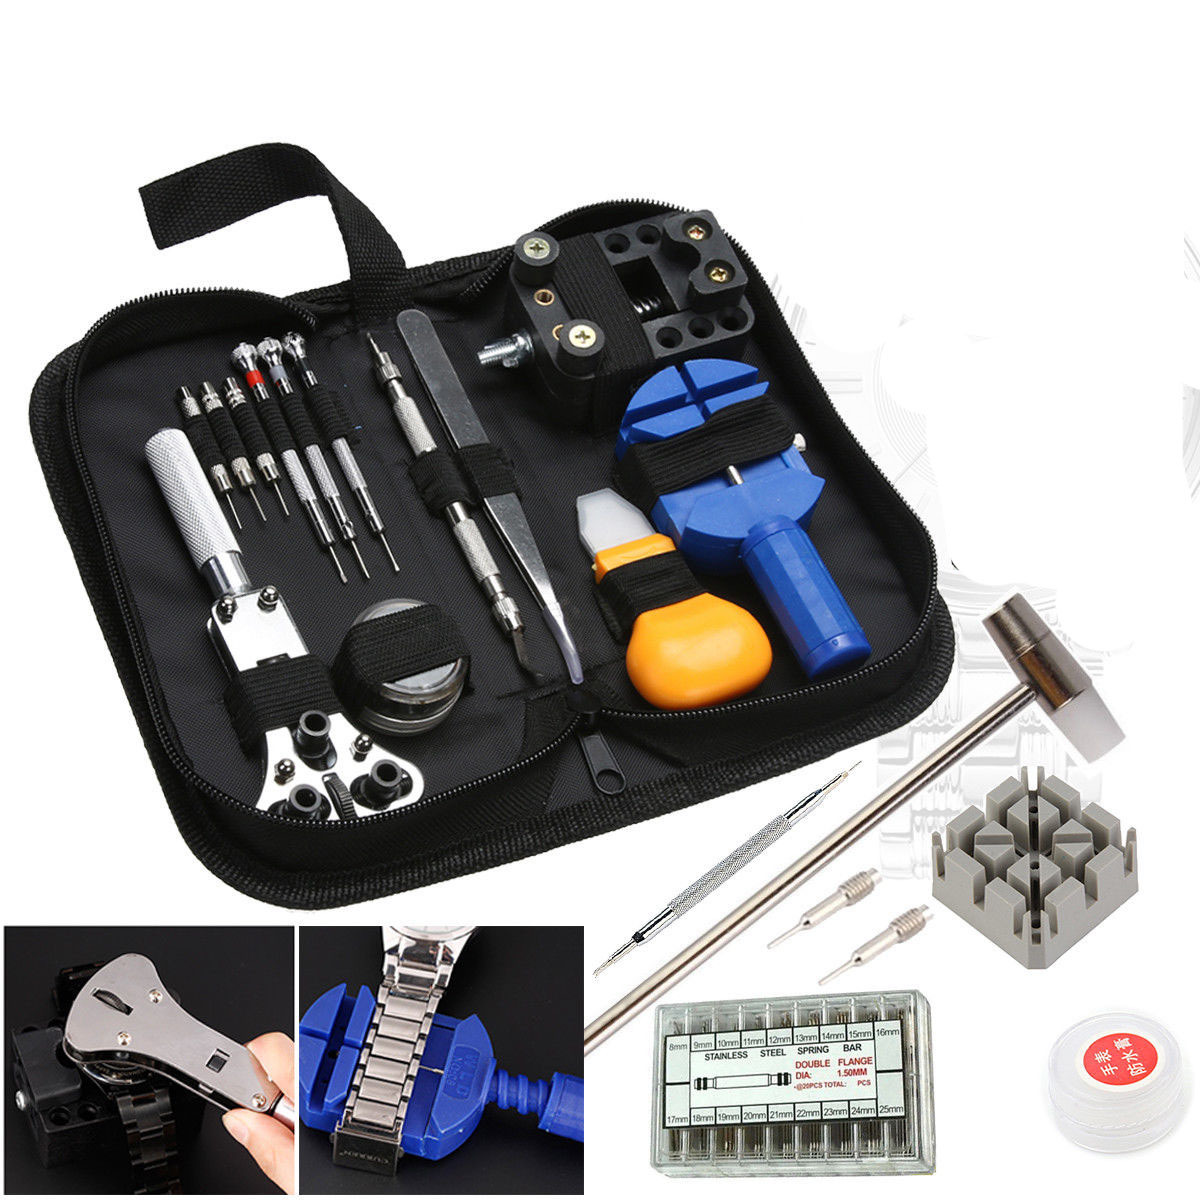 380Pcs Watch Repair Tool Kit Watchmaker Back Case Opener Remover Spring Pin Bars380Pcs Watch Repair Tool Kit Watchmaker Back Case Opener Remover Spring Pin Bars